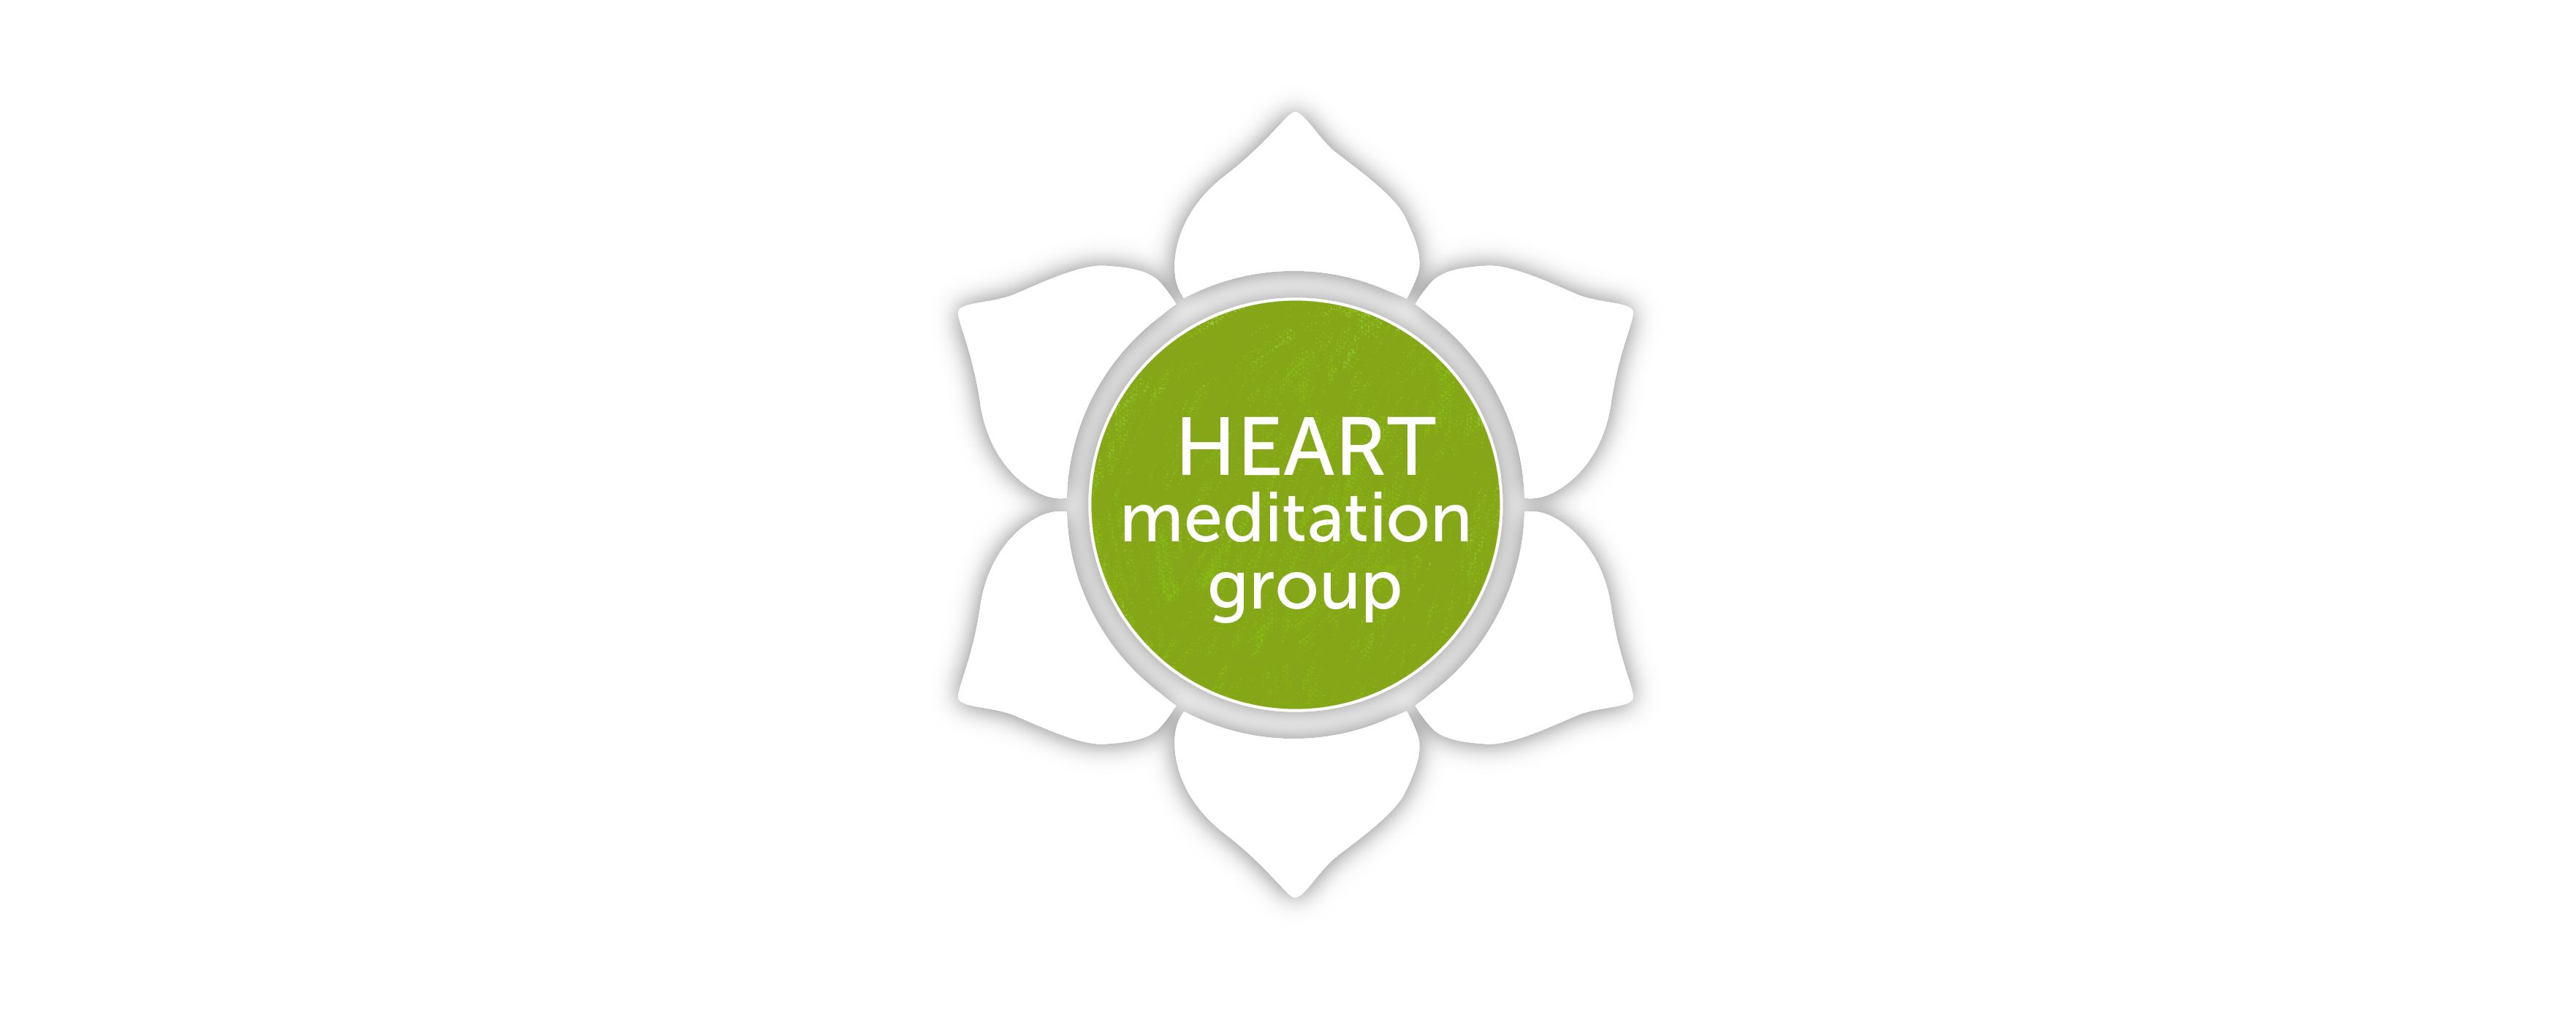 KOMAJA MEDITATION to open your heart and focus your mind